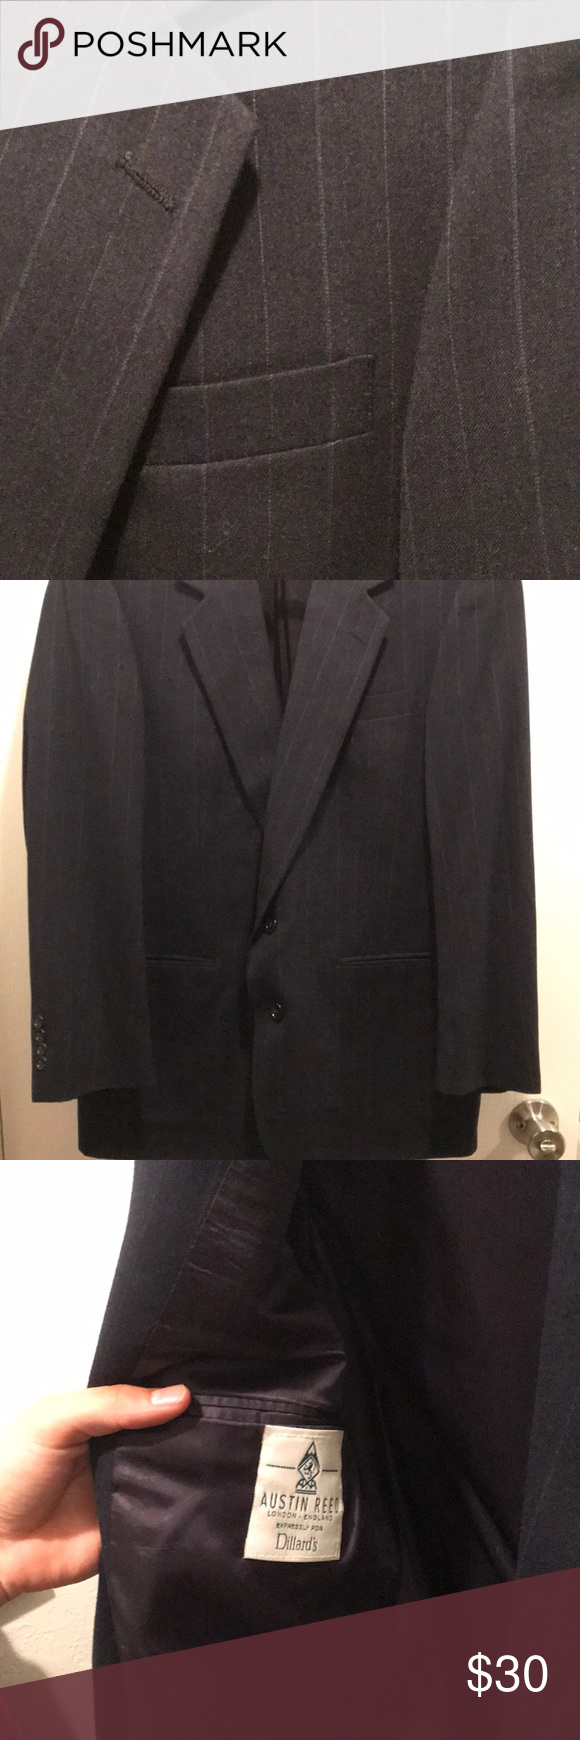 Dark Navy Blue Suit With Gray Pinstripes Austin Reed Stand Alone Blazer Blue With Gray Pinstripes Austin Ree Navy Blue Suit Dark Navy Blue Suit Blue Suit